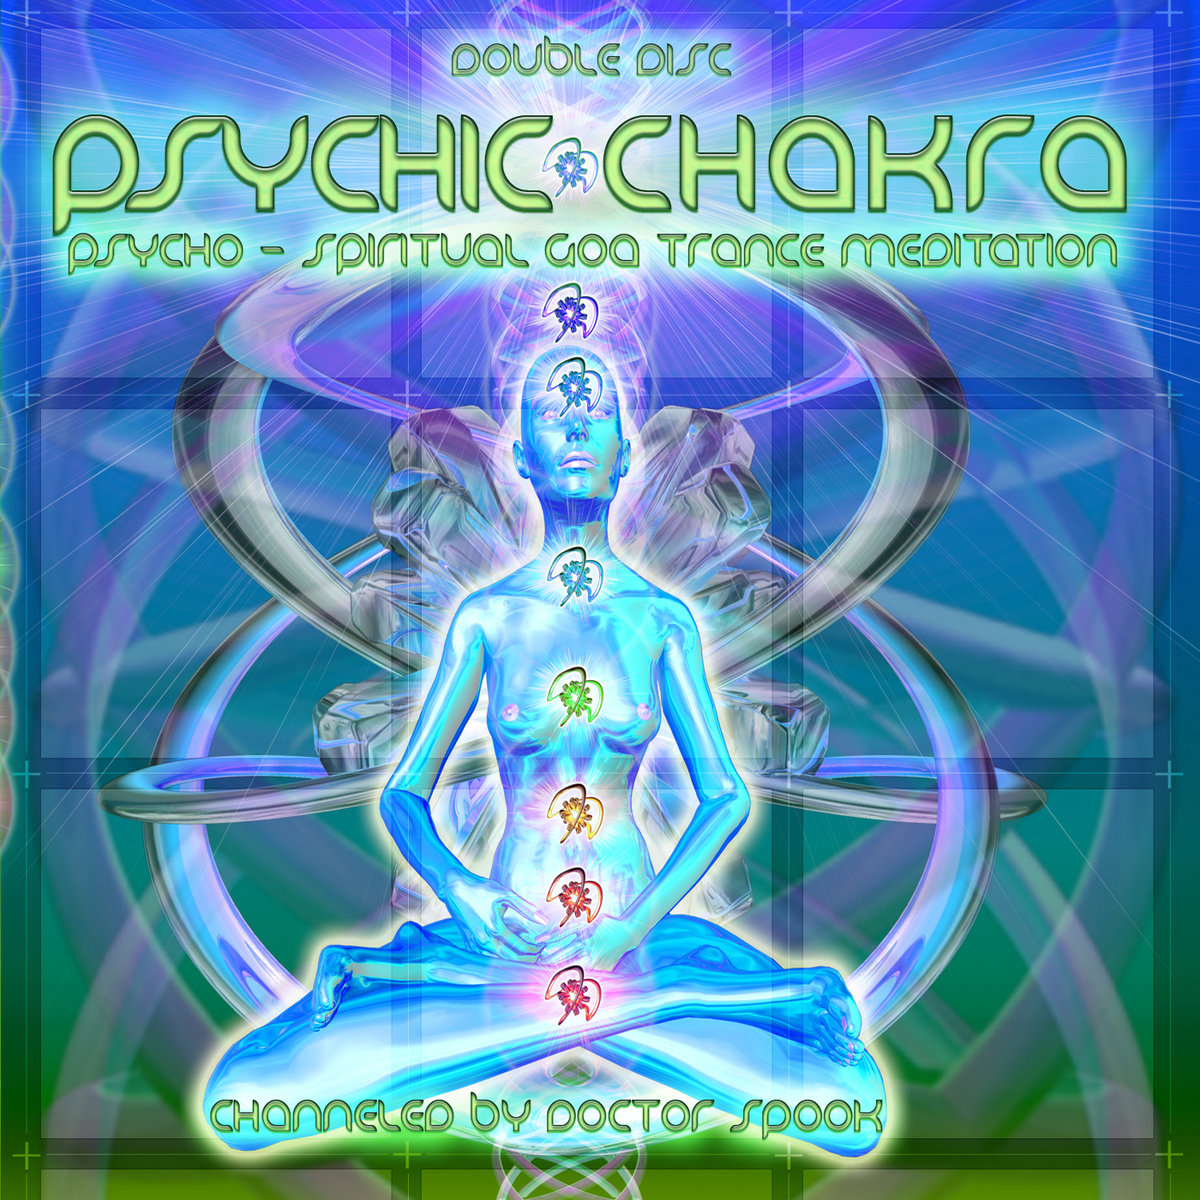 Delysid (Wicked Wires) - Neuronal Language Program @ 'Various Artists - Psychic Chakra (Channeled by Dr. Spook)' album (electronic, psychic chakra)